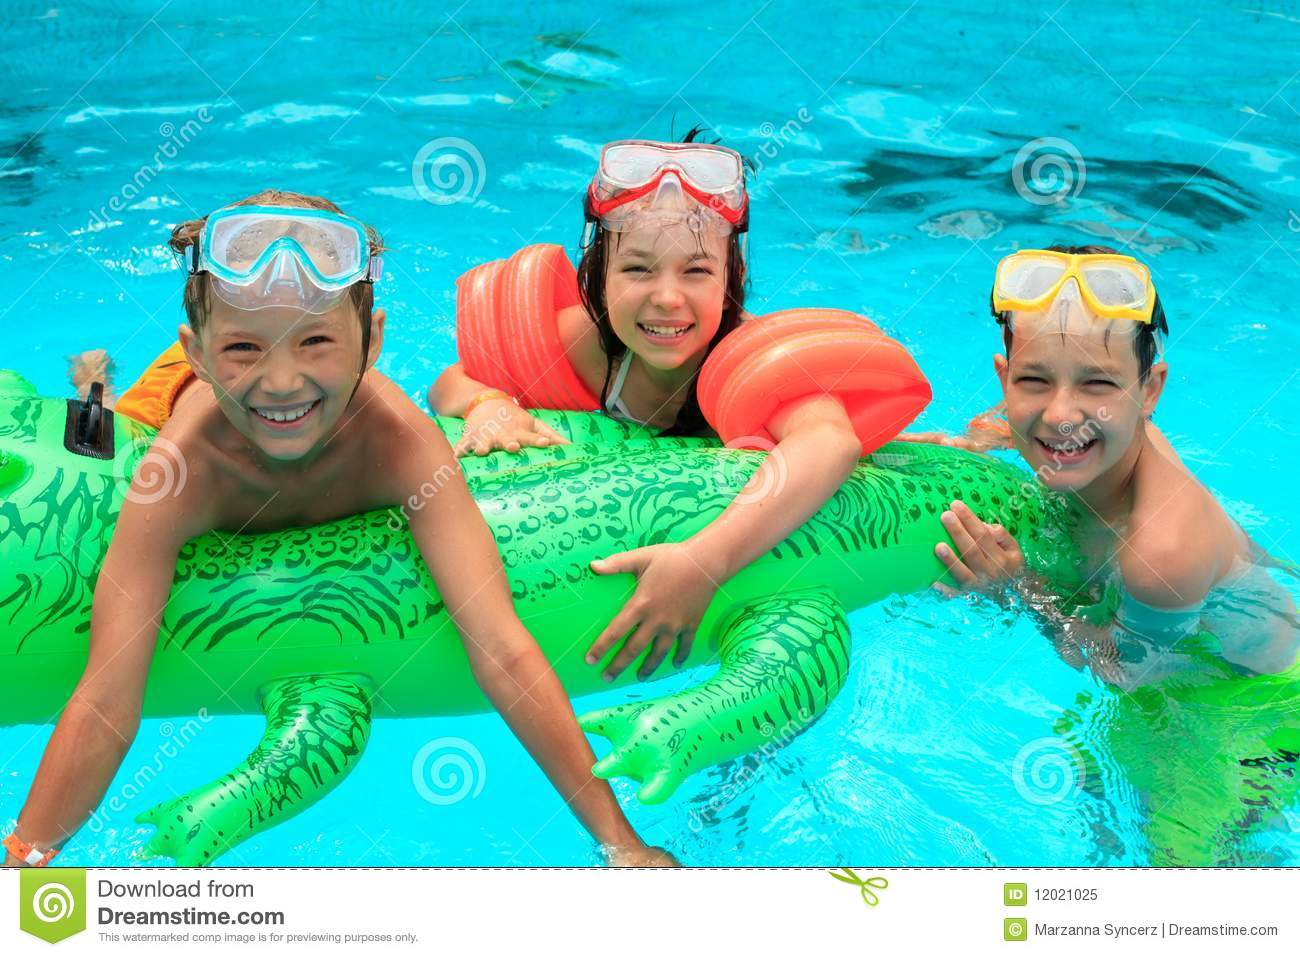 Kids in swimming pool royalty free stock photo image for Kids swimming pool